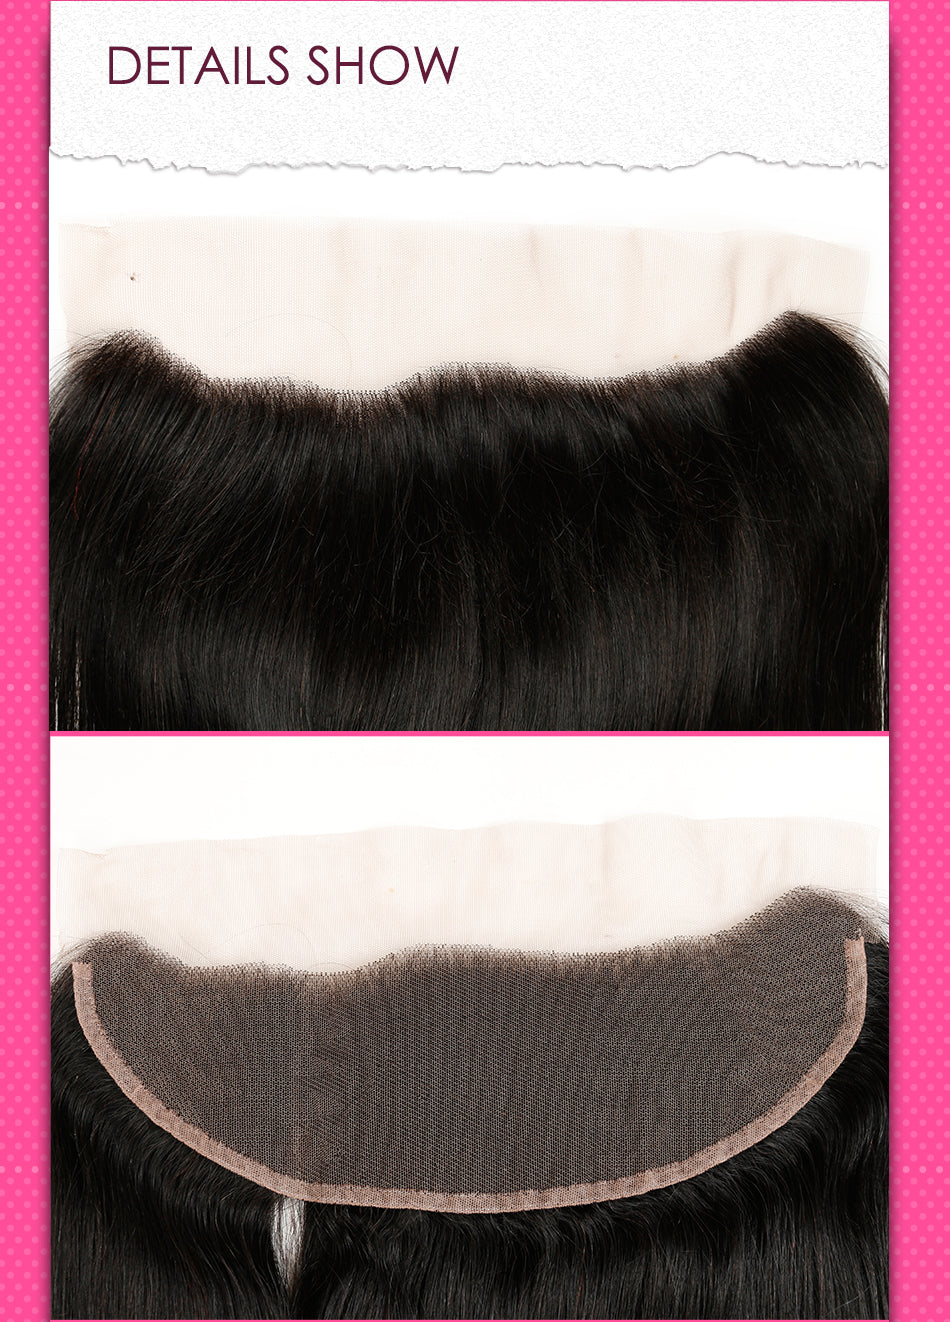 Mink Brazilian Virgin Hair Straight 13x4 lace frontal closure - Jeybeauty